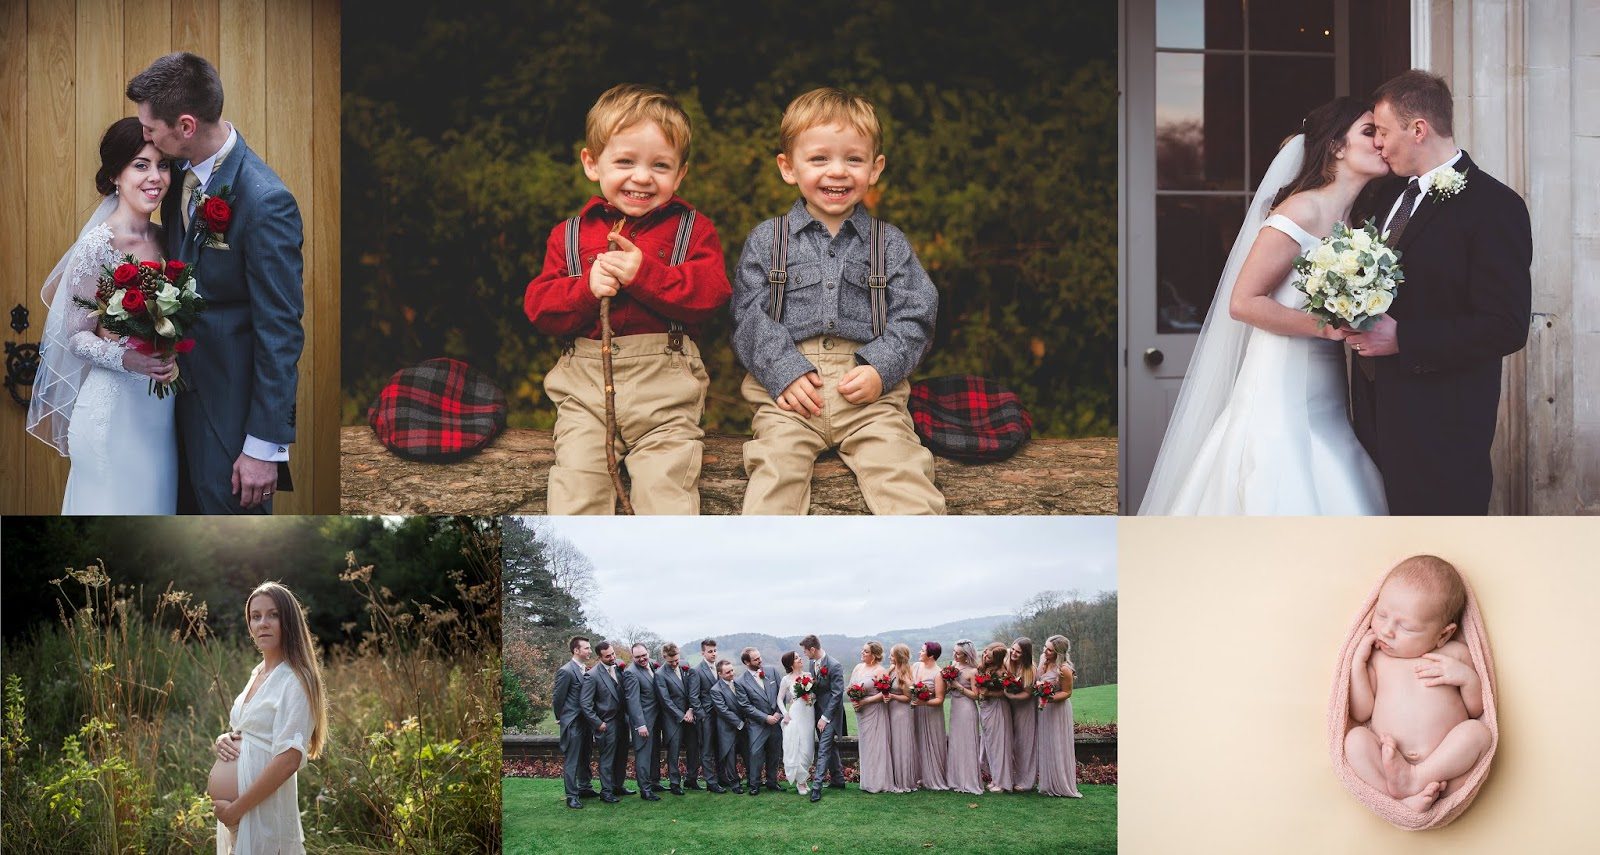 Wedding Photographer near me, Family Photographer near me